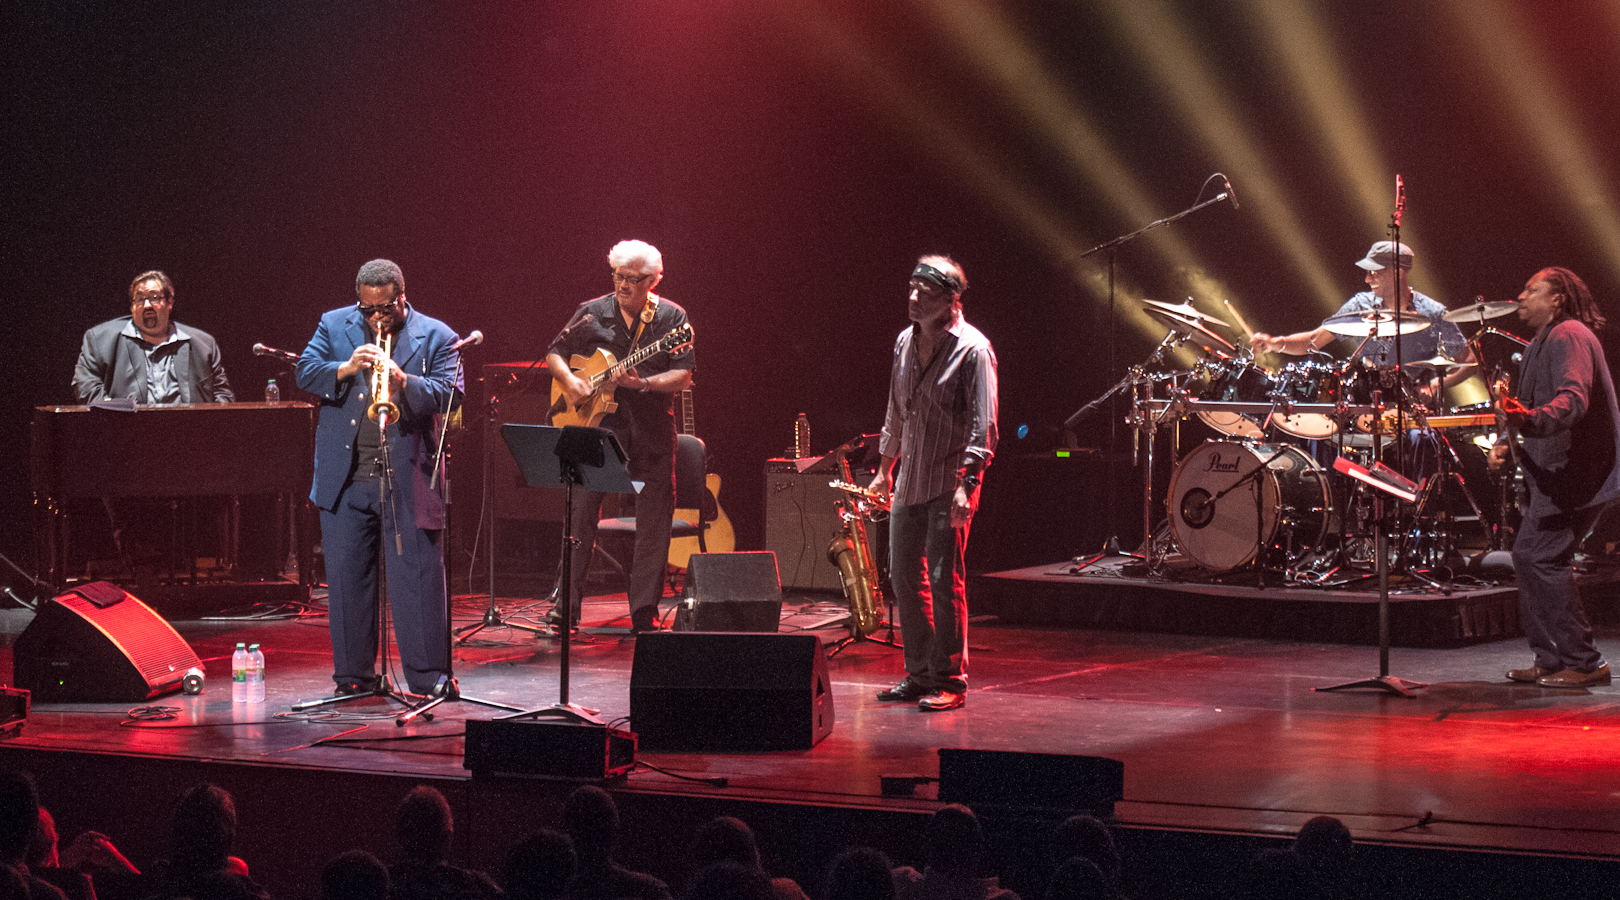 Joey Defrancesco, Wallace Roney, Larry Coryell, Bill Evans, Omar Hakim and Darryl Jones with Miles Smiles at the Montreal International Jazz Festival 2012